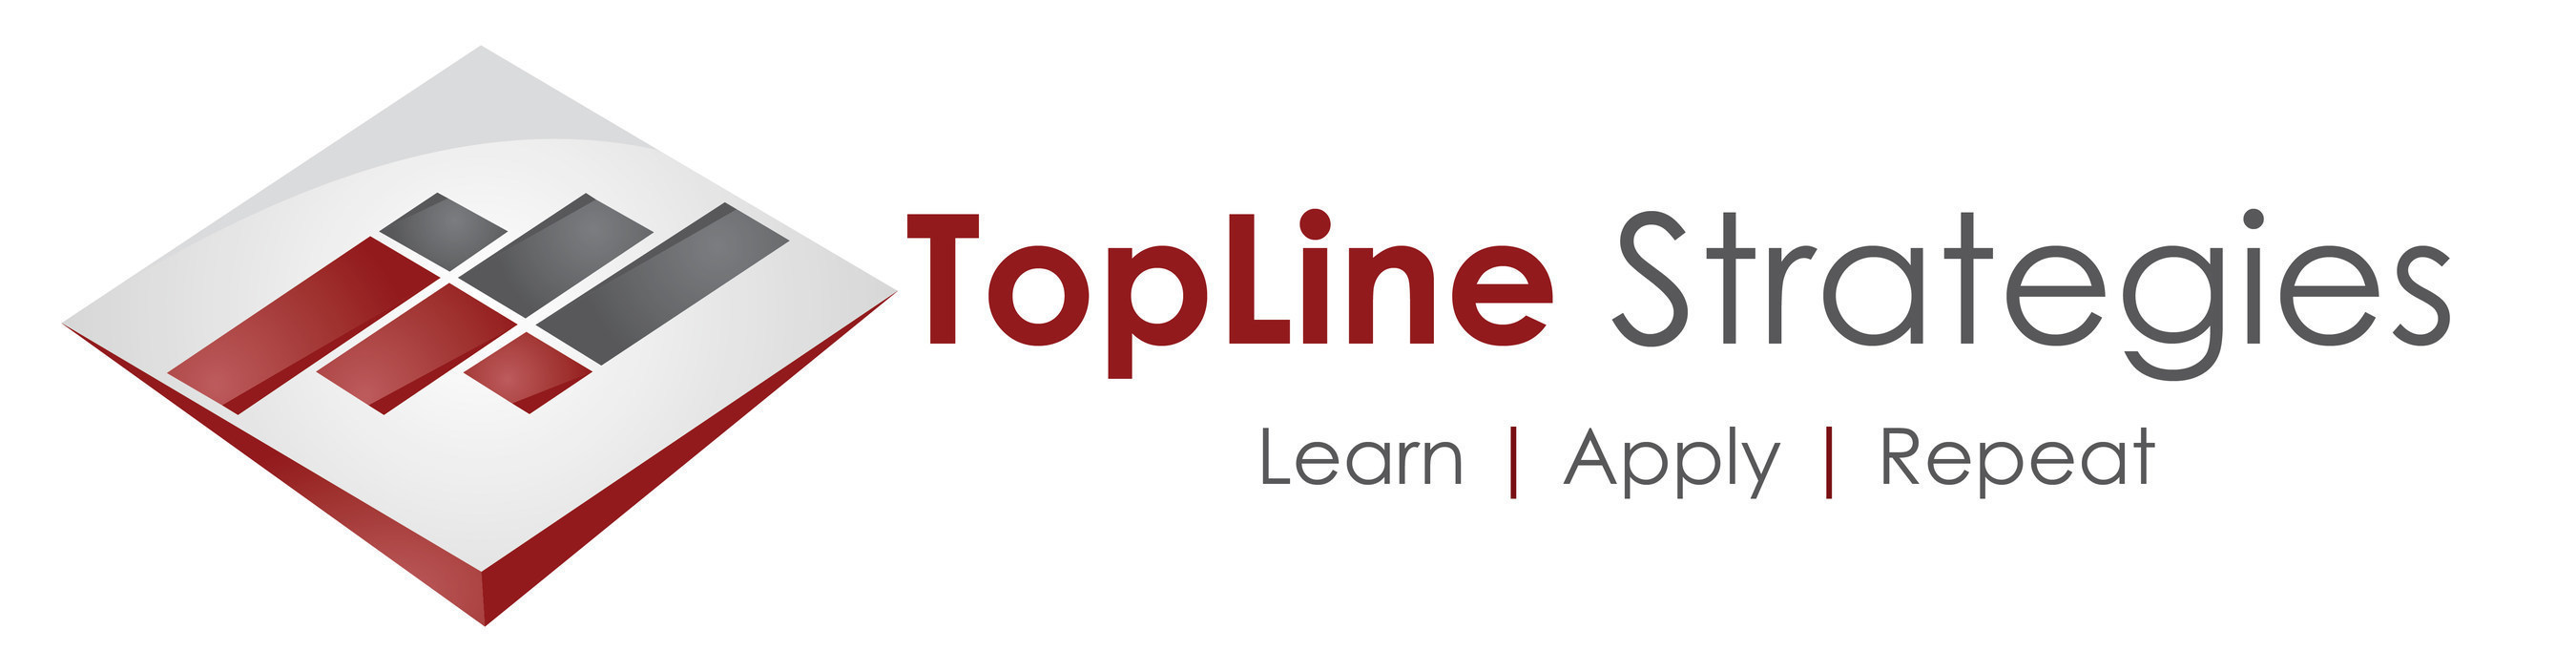 TopLine Strategies Appoints Robert G. O'Malley as Advisory Member of the Board of Directors